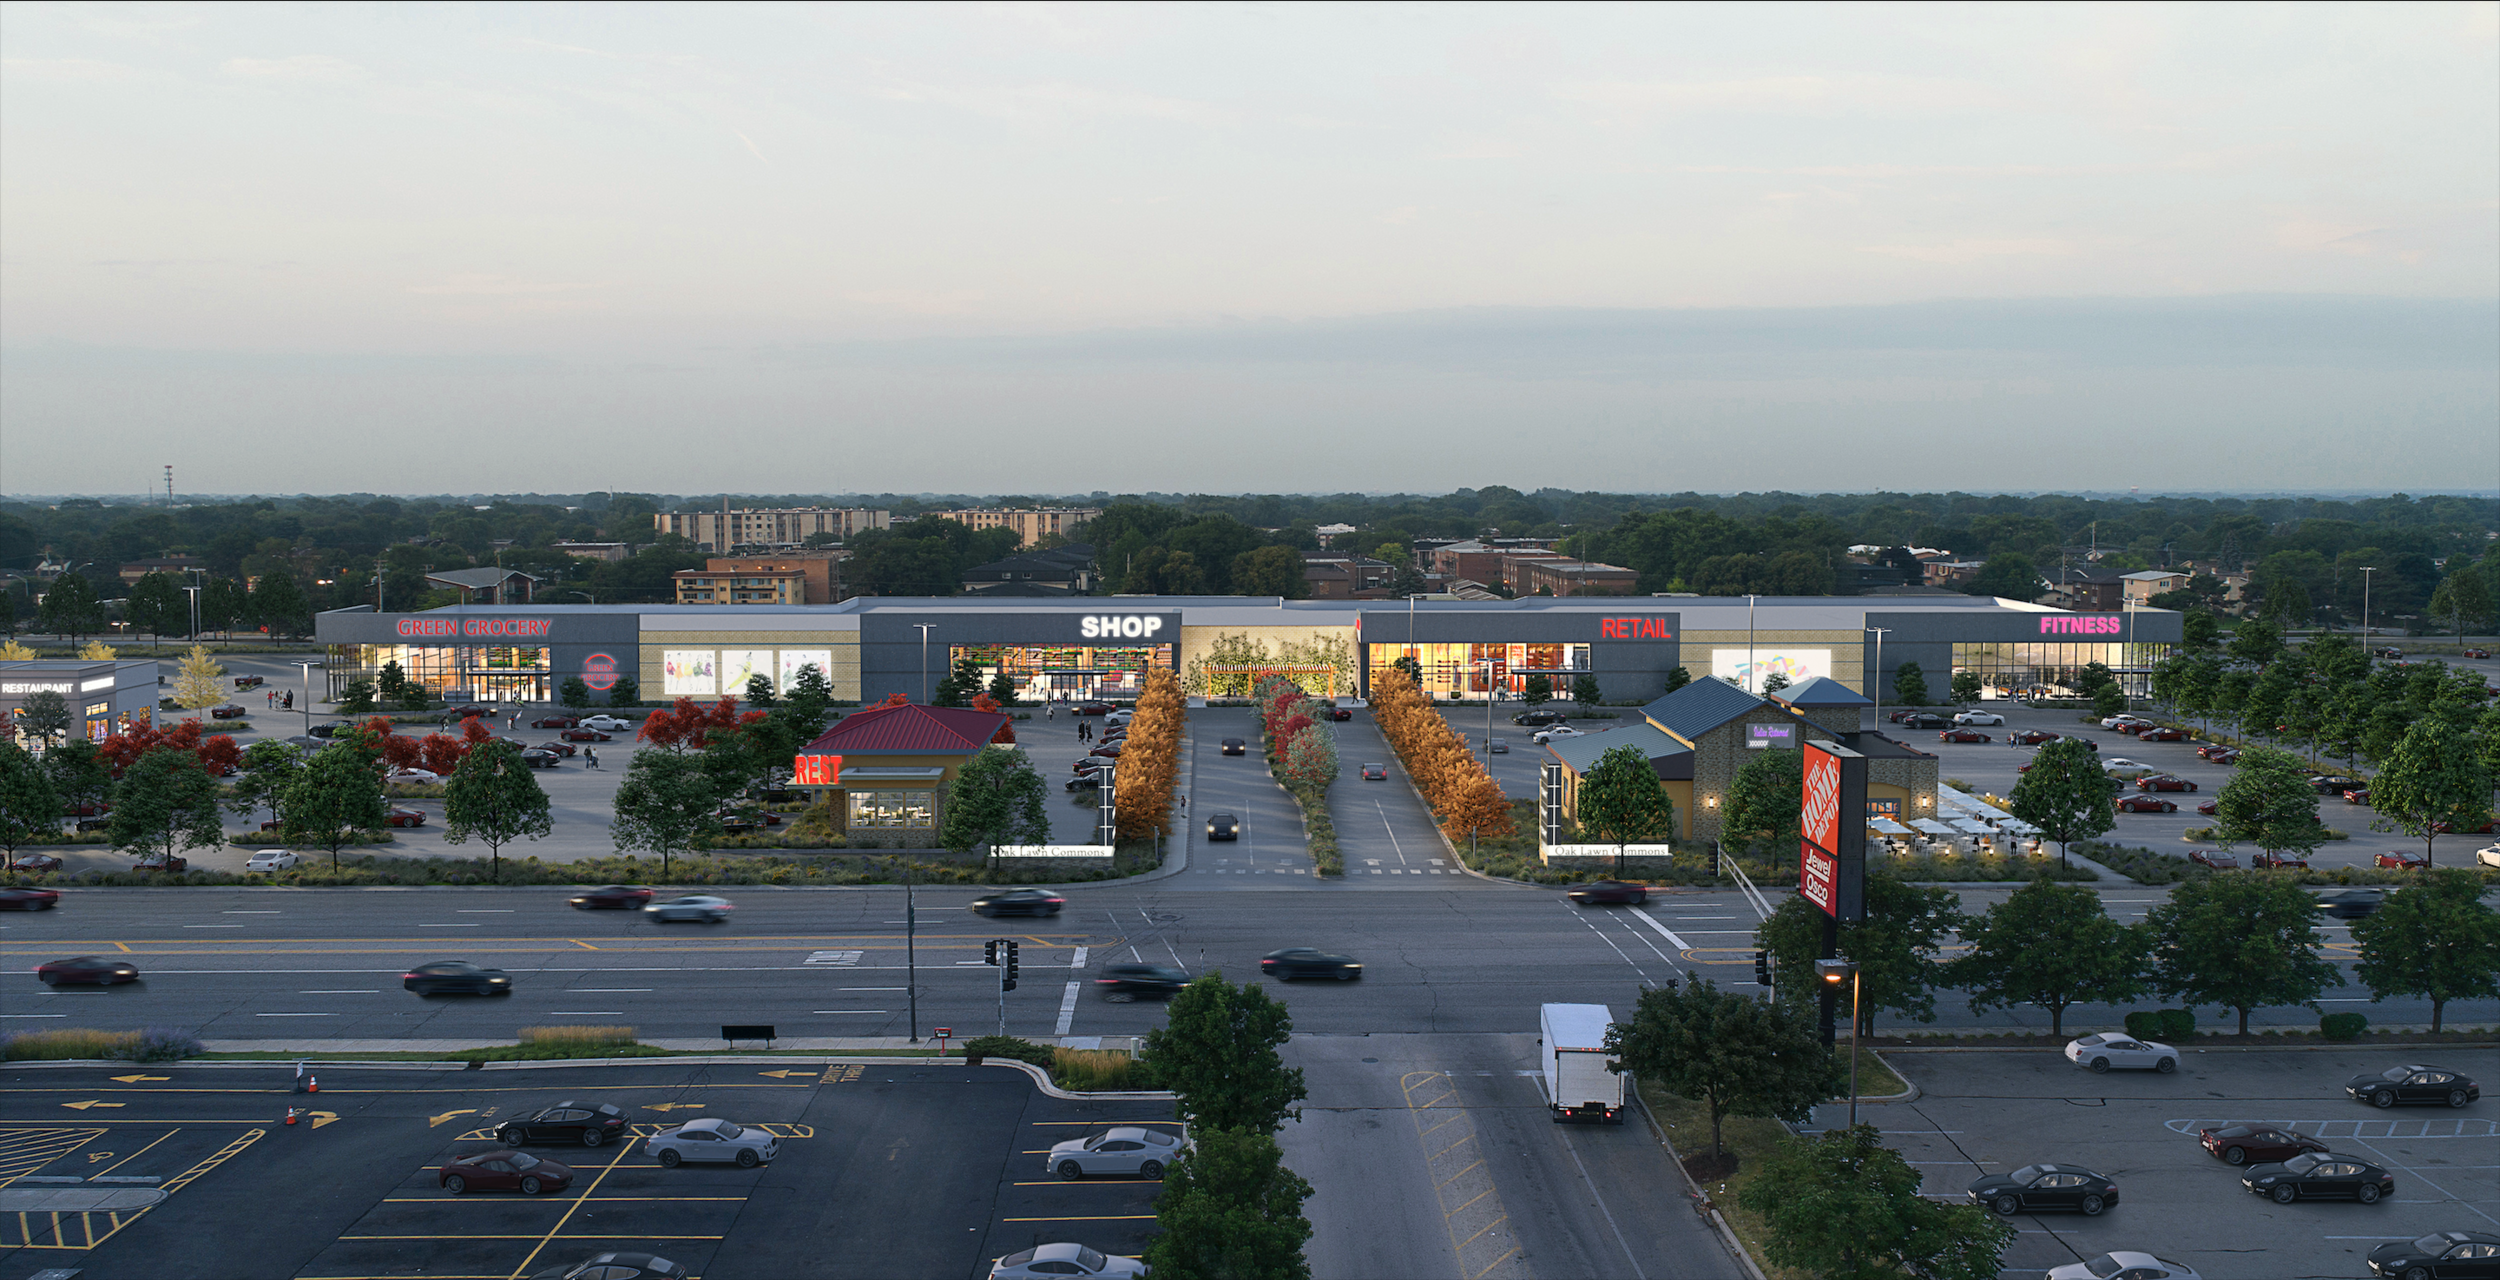 DEVELOPERS UNVEIL RETAIL DEVELOPMENT PLAN FOR OAK LAWN SHOPPING CENTER - CHICAGO TRIBUNE > 9.19.2018